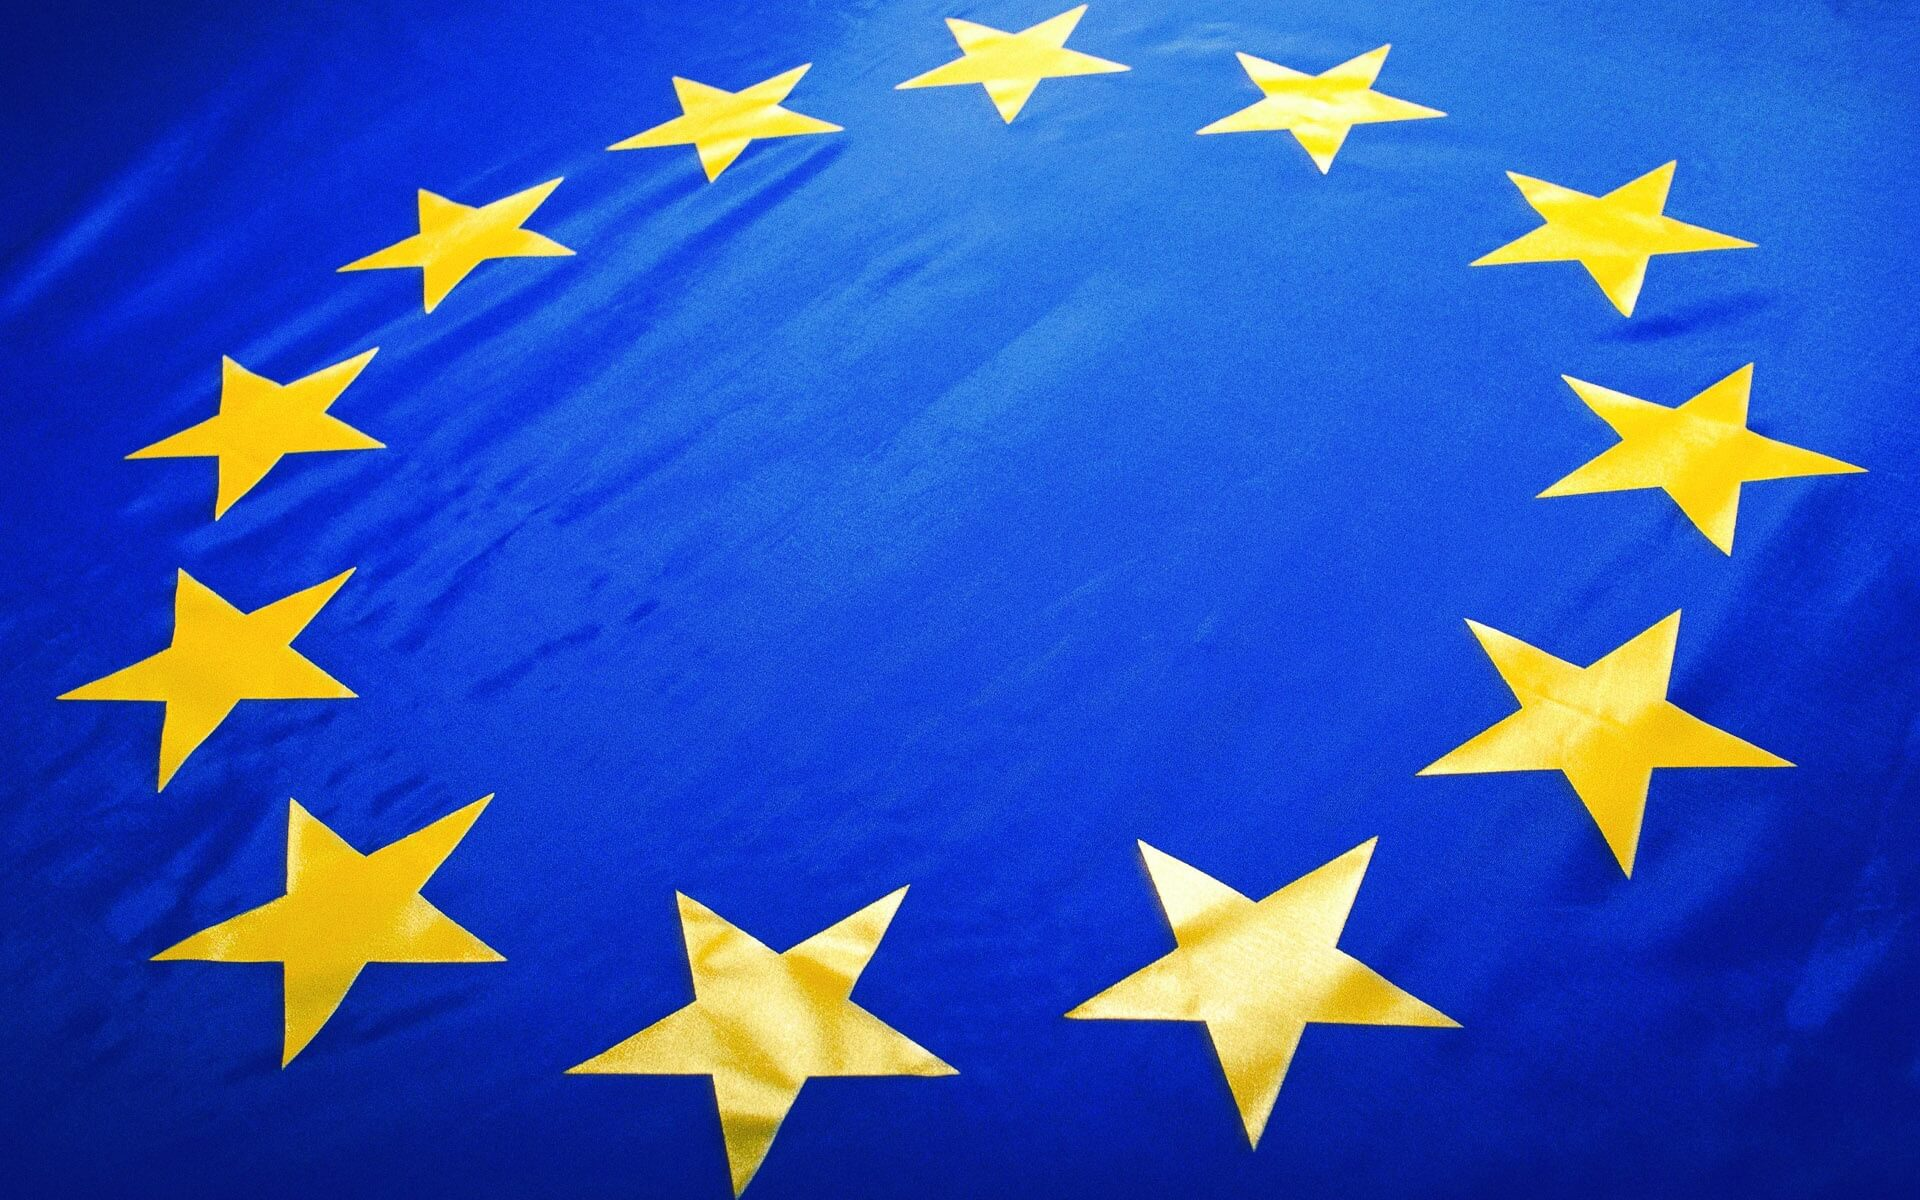 European Commission sets out path to digitise European industry